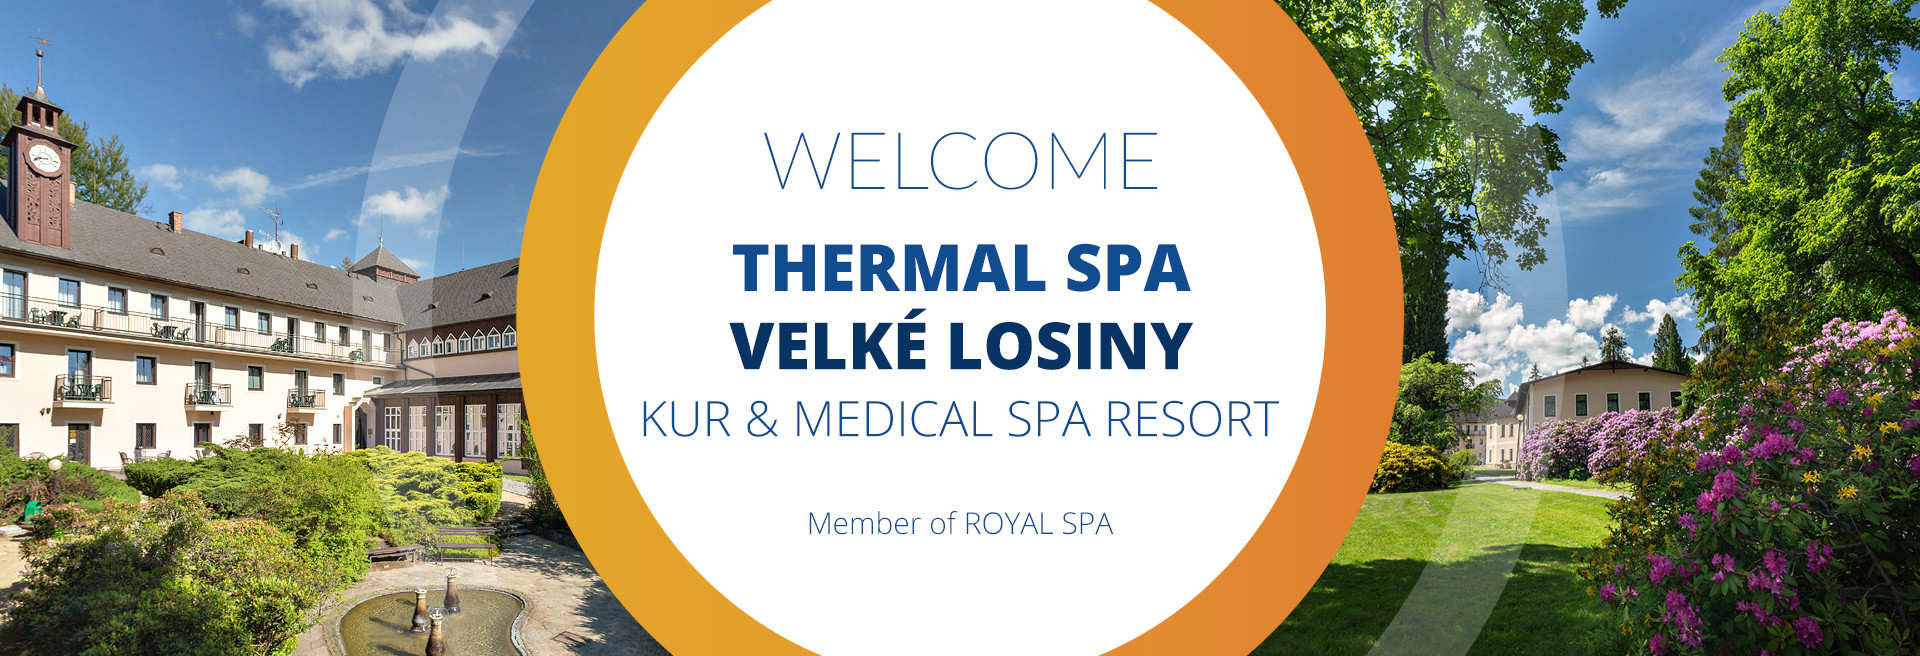 THERMAL SPA Velké Losiny - about us